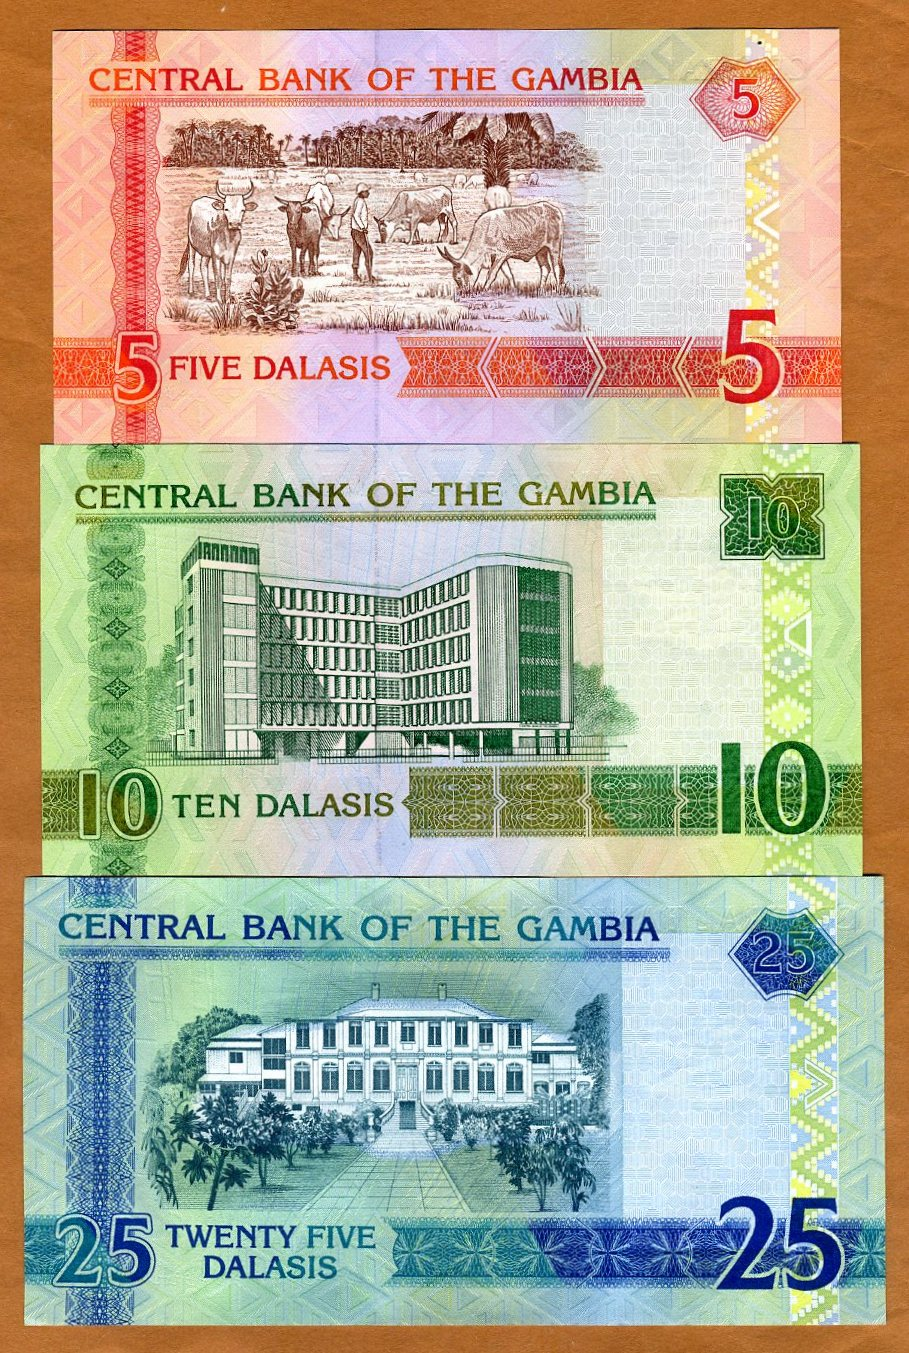 ND 10 Dalasis P-26-New 2006 UNC 2013 Issue Gambia